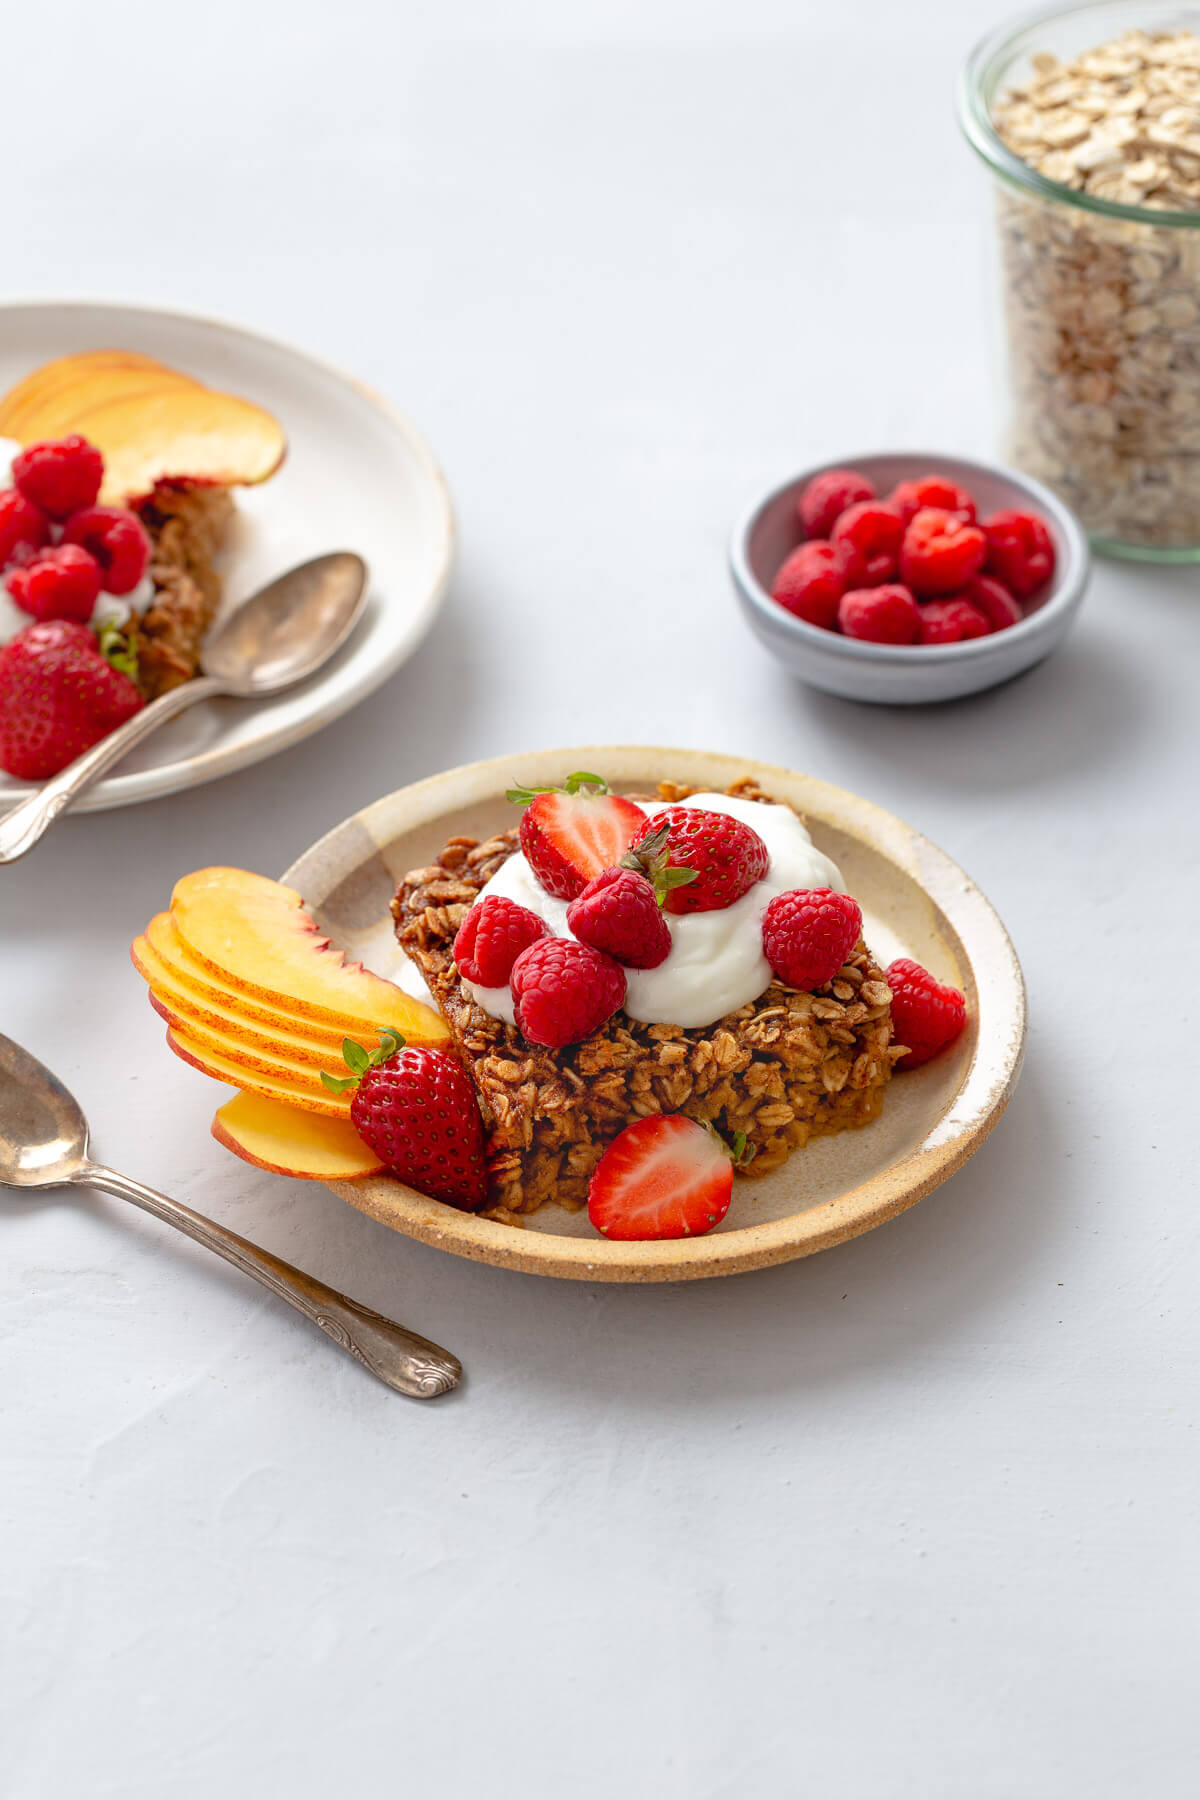 Plate of baked oatmeal topped with yogurt and fresh fruit.